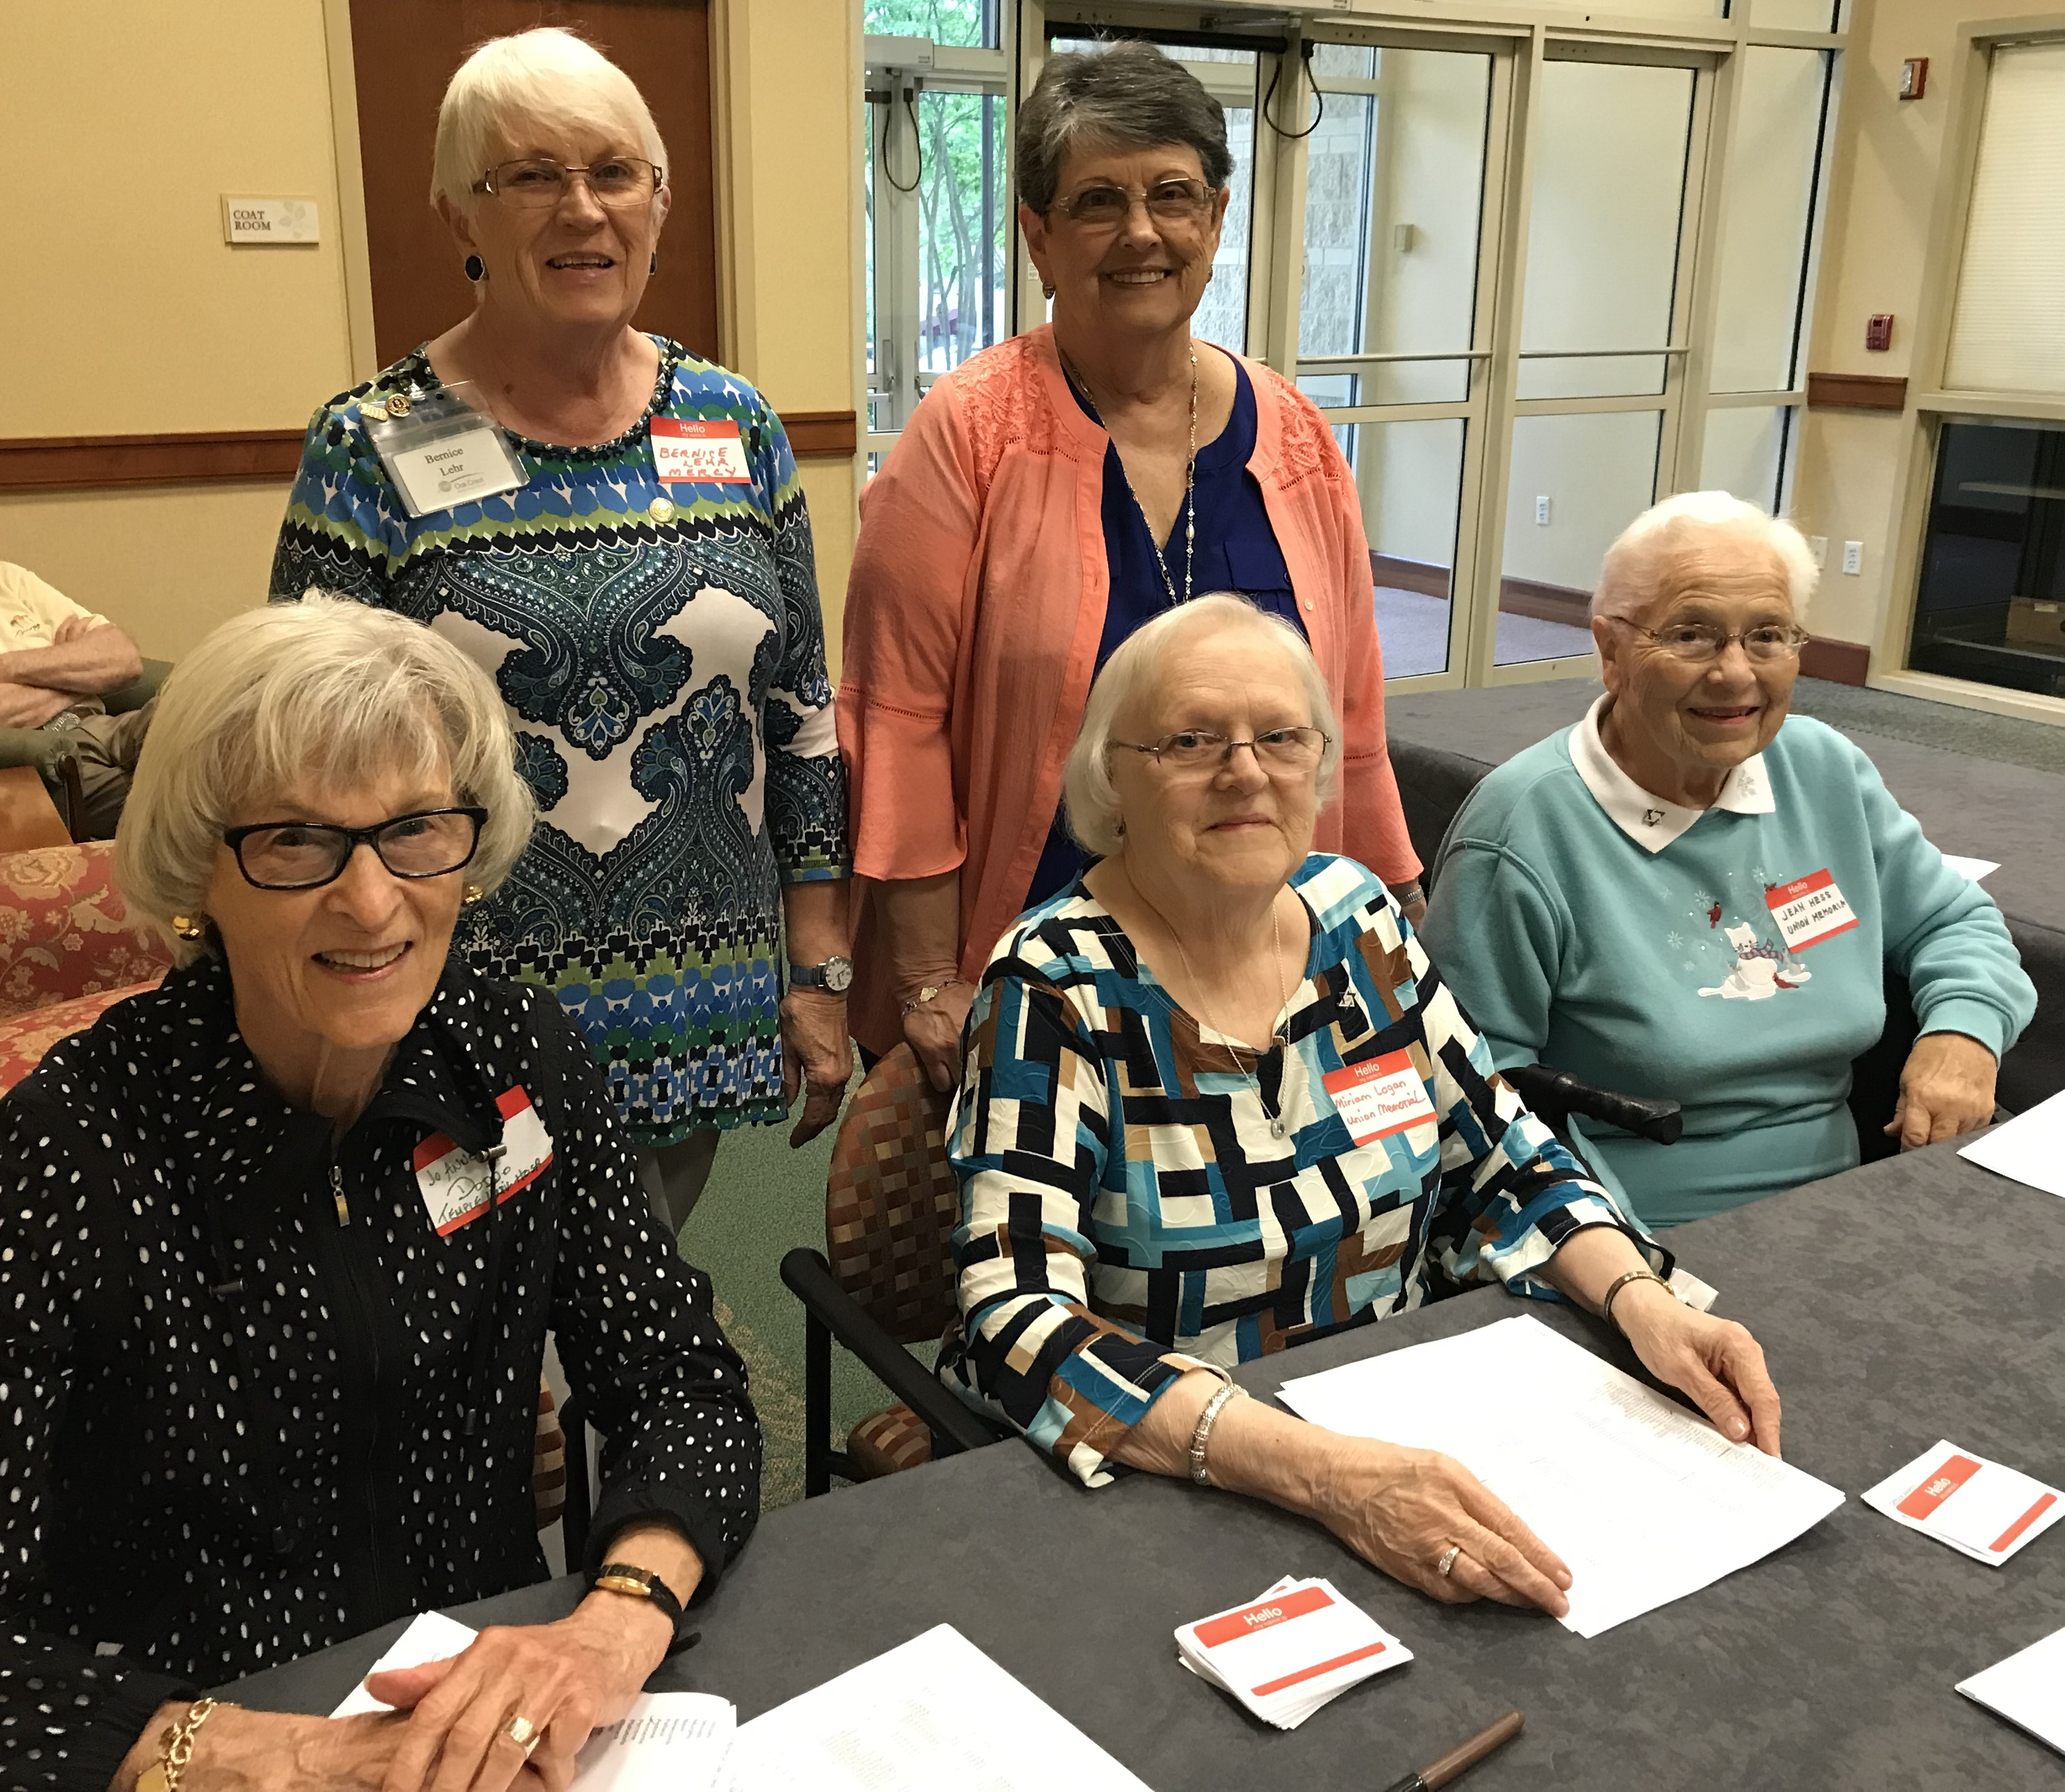 Four residents of Oak Crest are at the welcome table for the 2019 Annual Nurses' Week Luncheon.